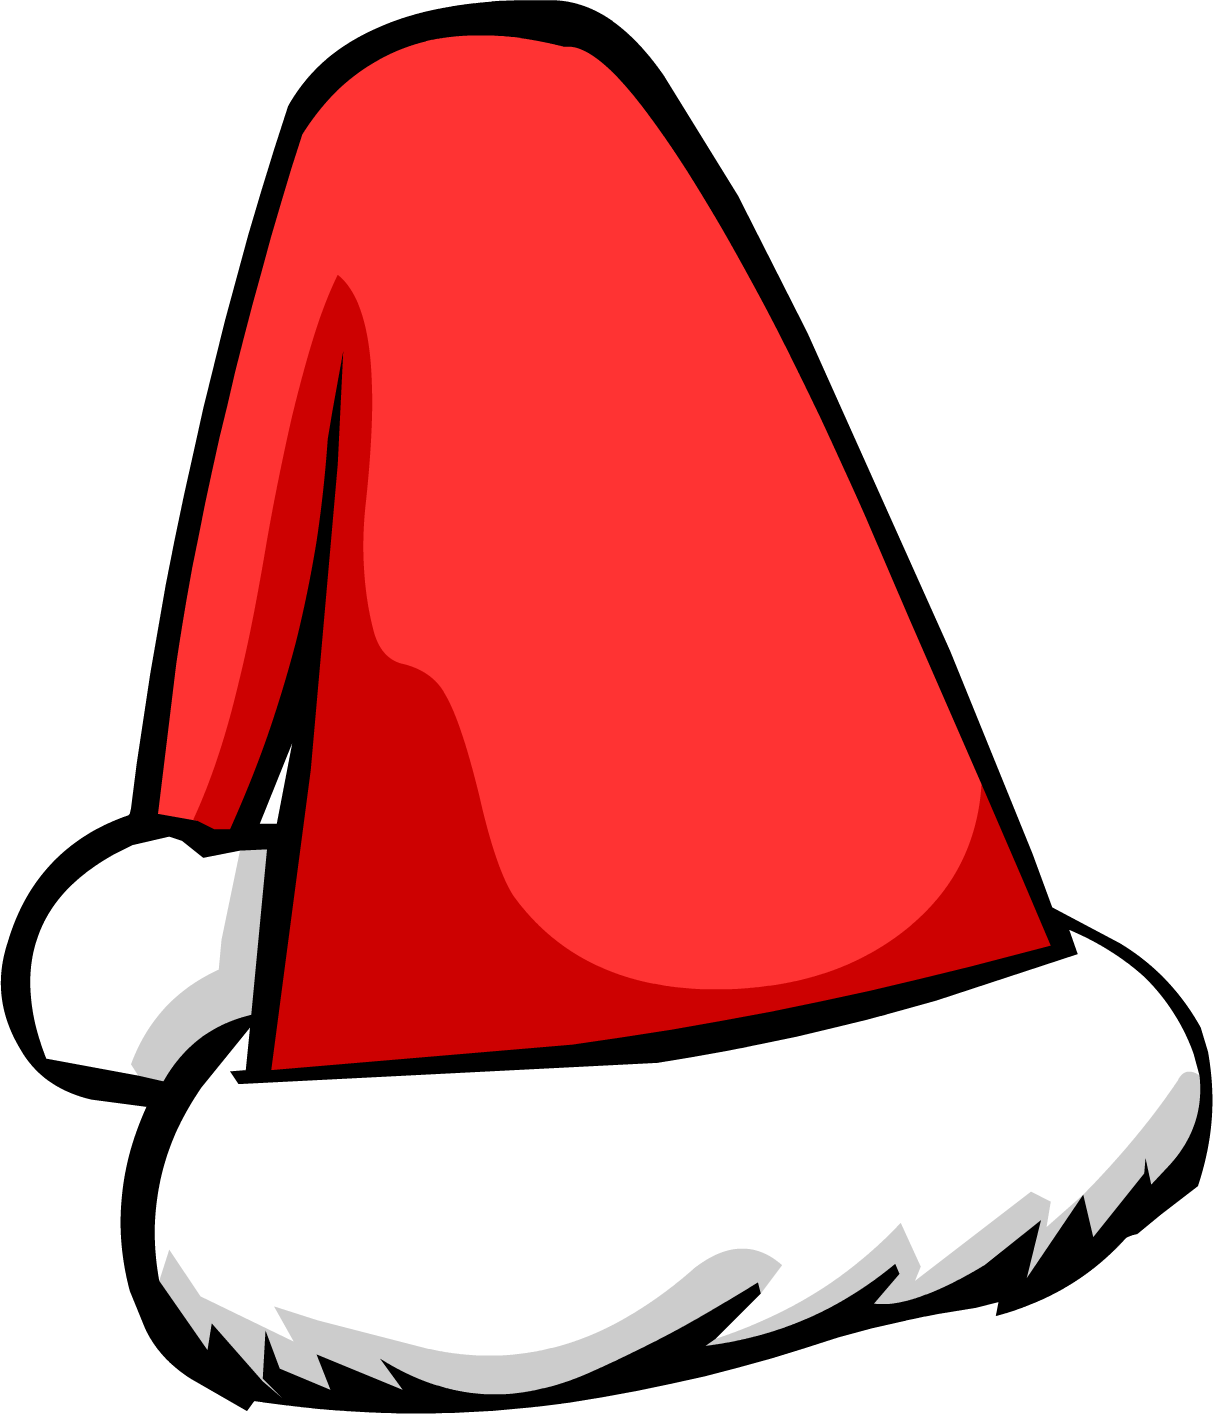 Santa Hat clipart #20, Download drawings